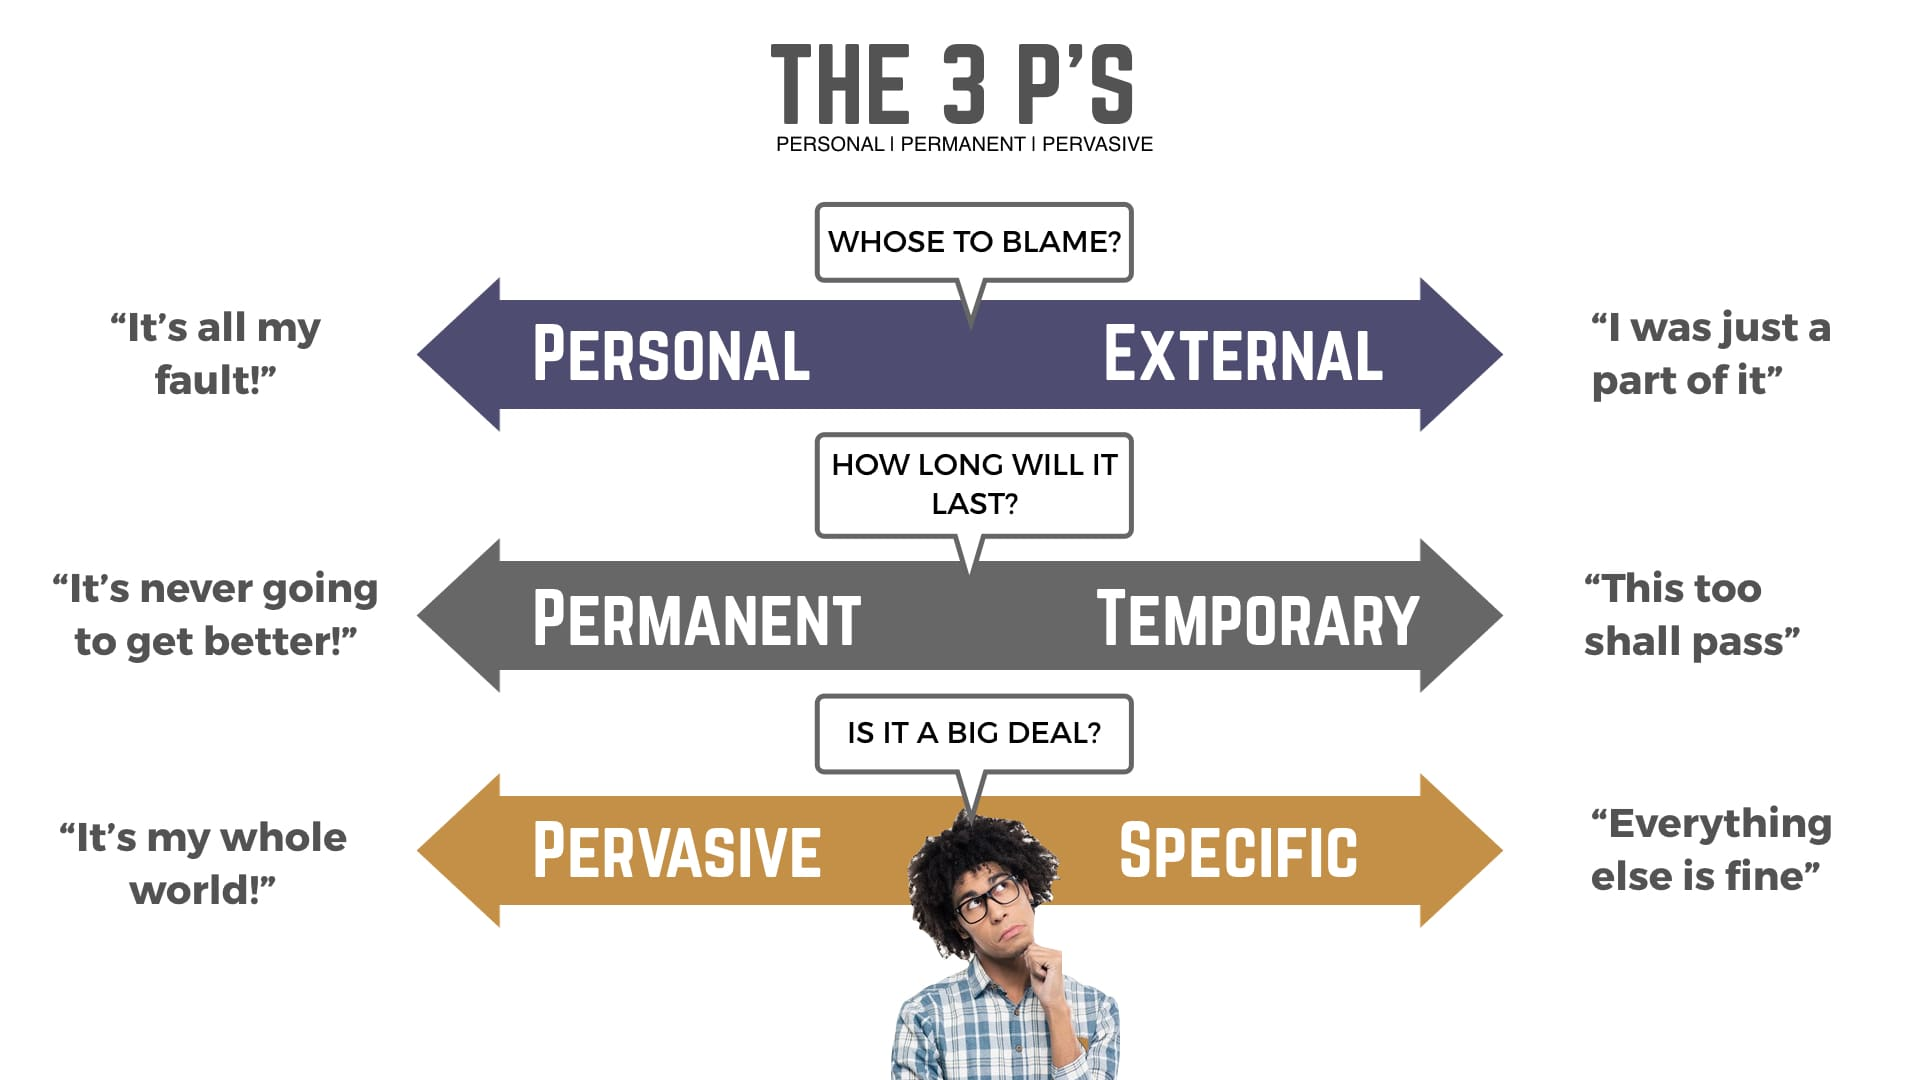 The 3 Ps